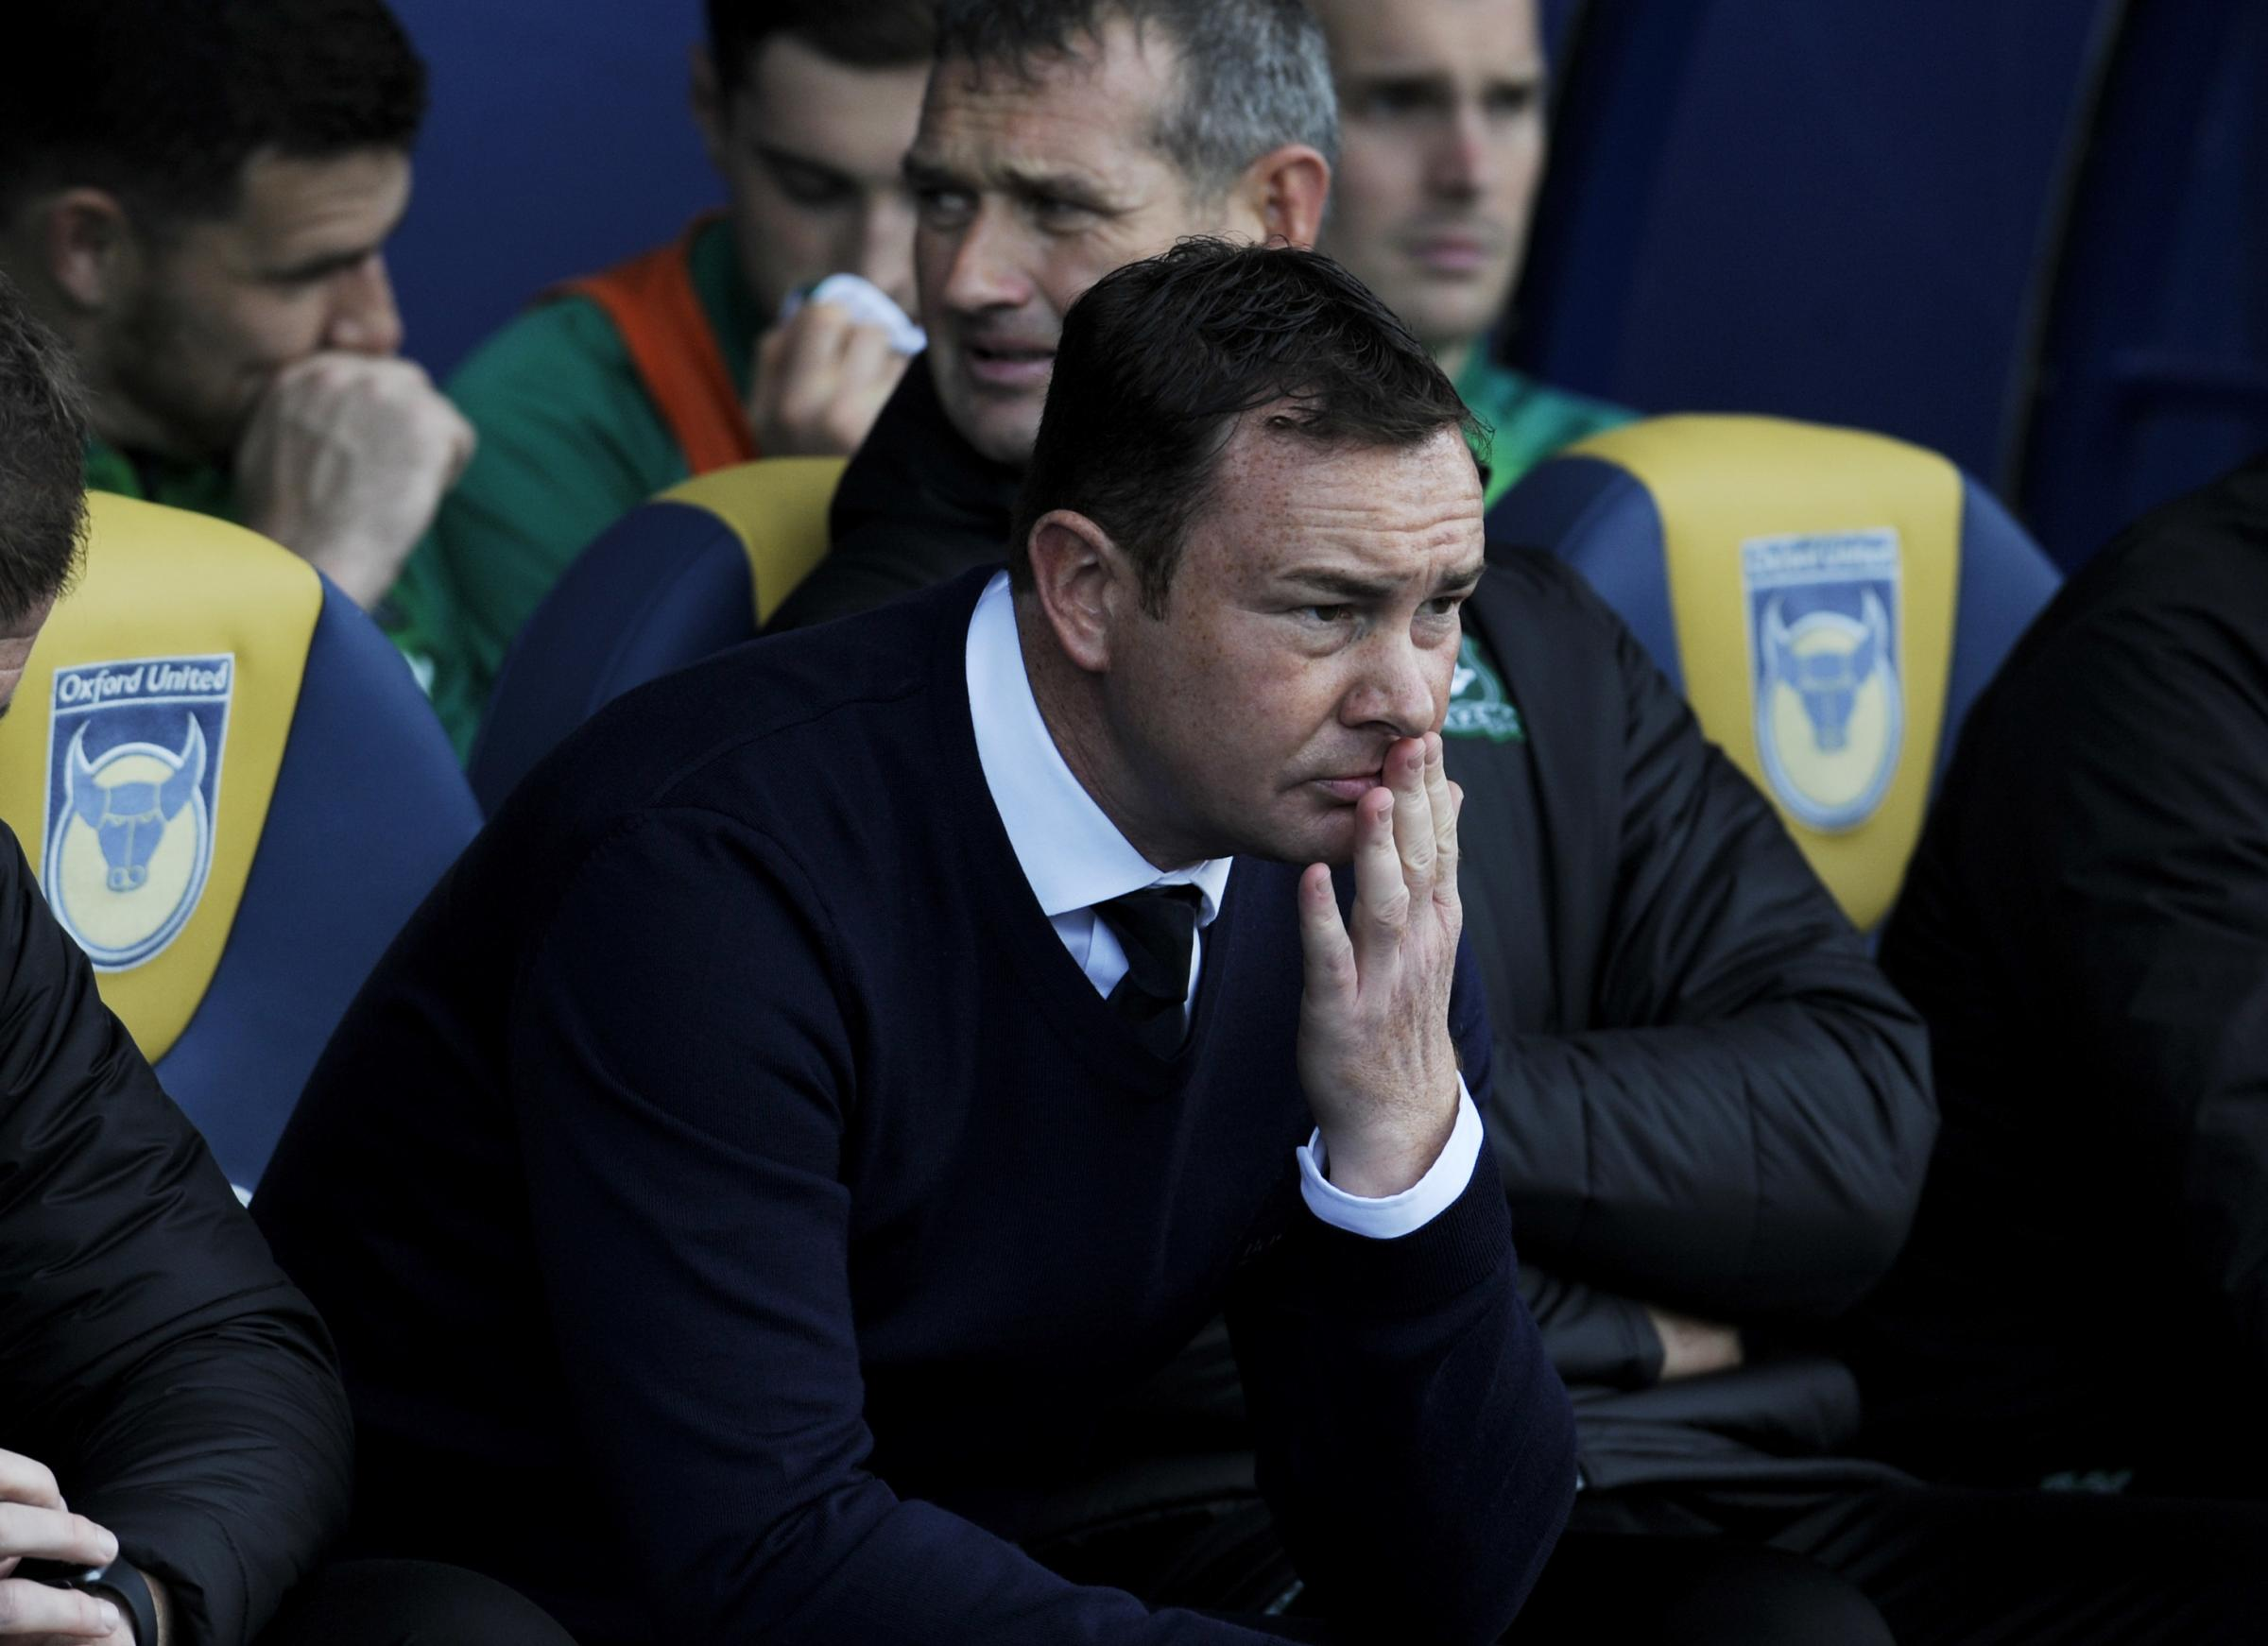 Oxford Utd V Plymouth Argyle.Plymouth boss, Derek Adams ponders the game ahead..Picture by: Copyright: David Fleming.